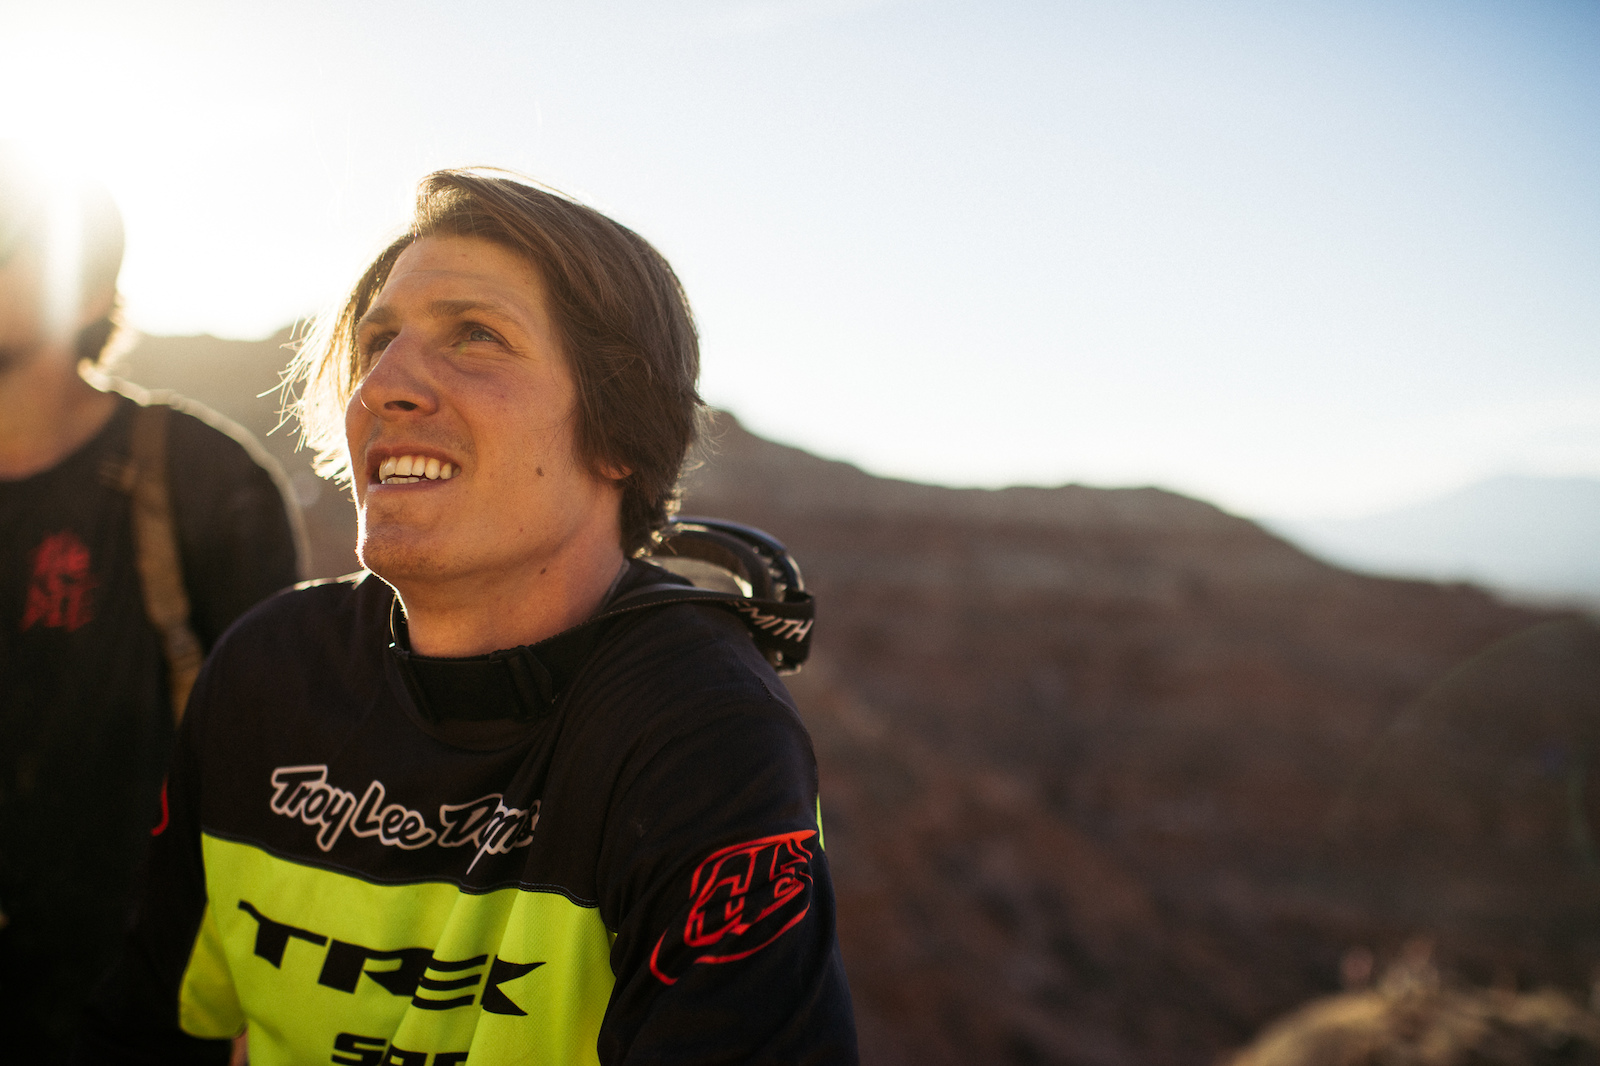 Brandon Semenuk all smiles after stomping his big drop off the ridge.